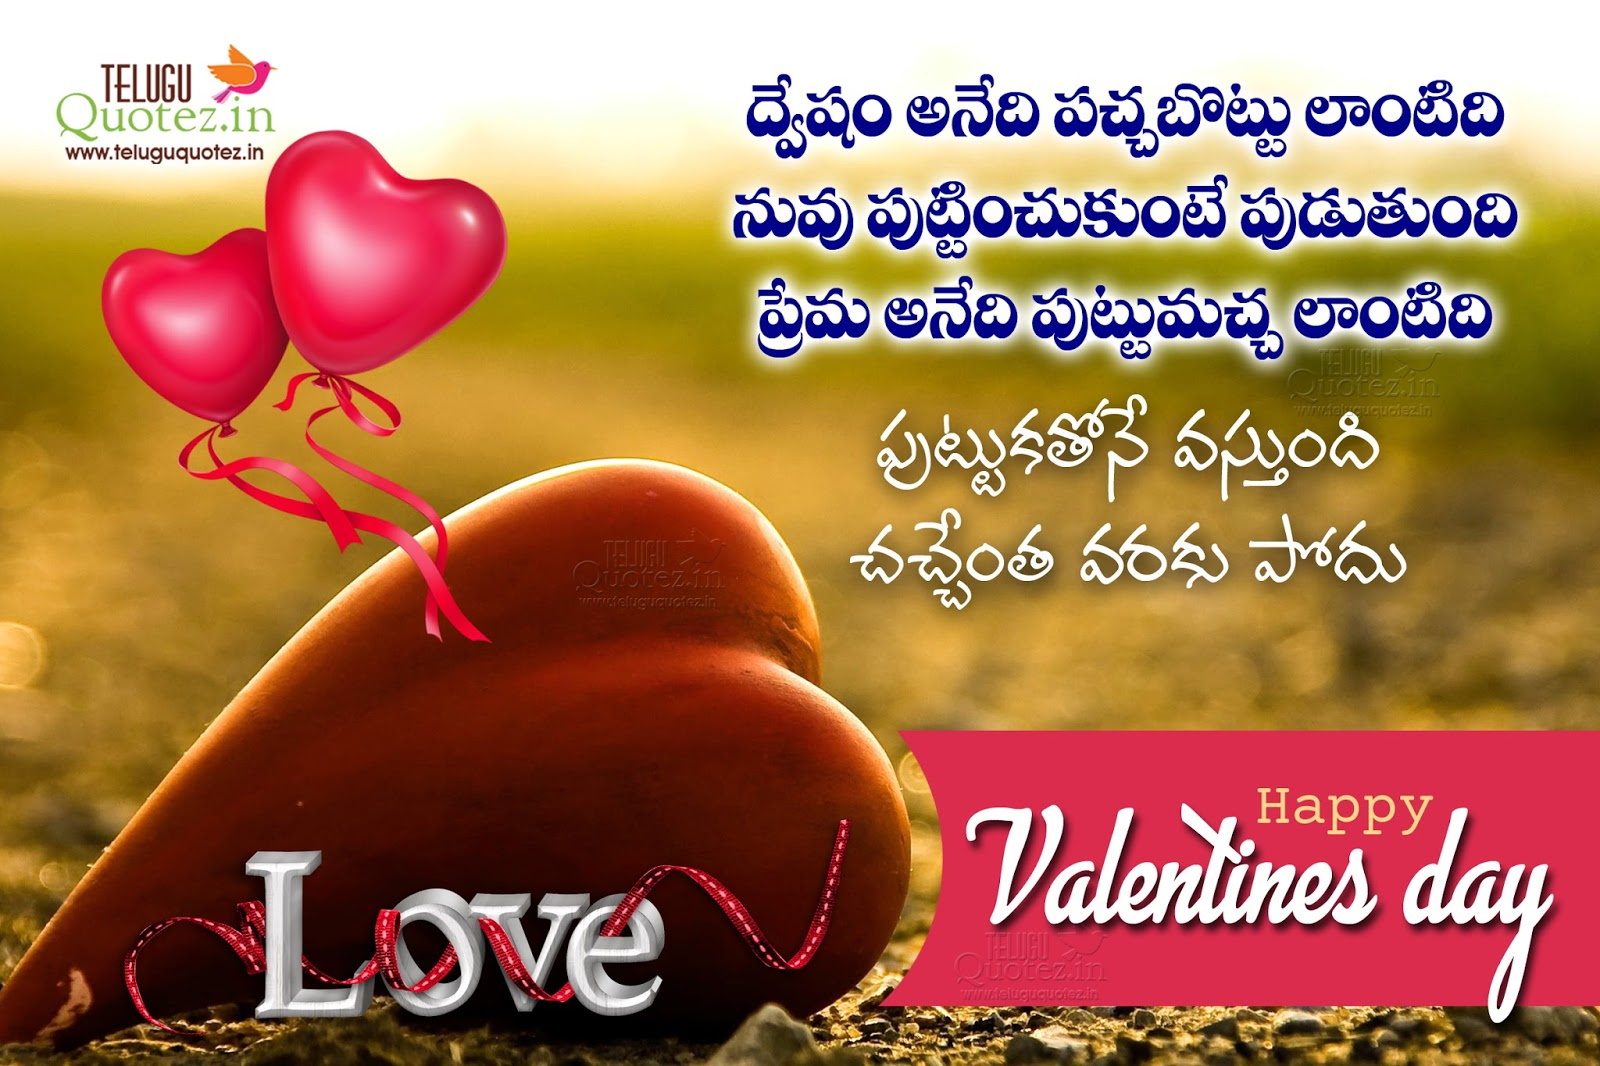 Valentines day quotes and greetings with nice love images telugu valentines day best quotes with images n m4hsunfo Gallery